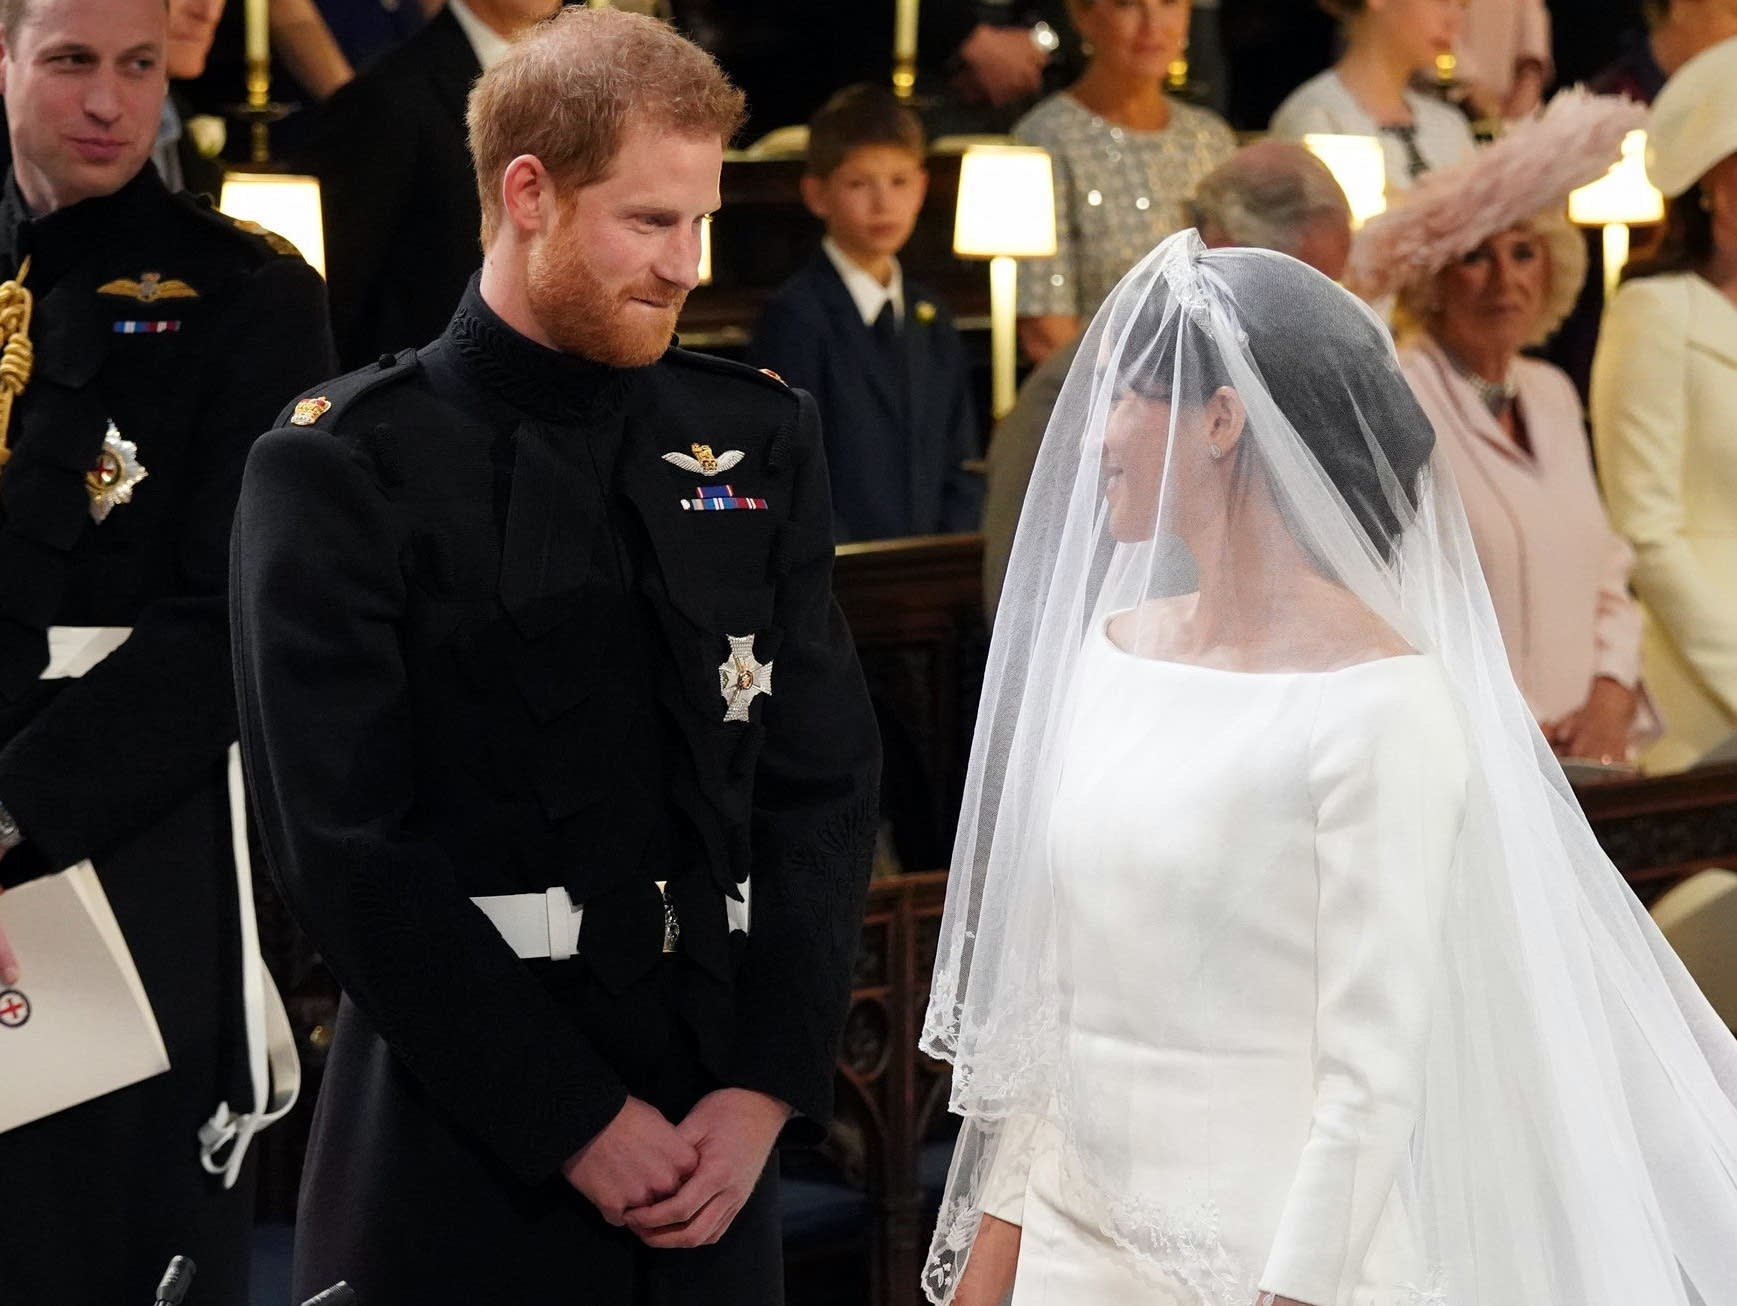 Meghan Markle Wears Wedding Dress By Uk Designer Clare Waight